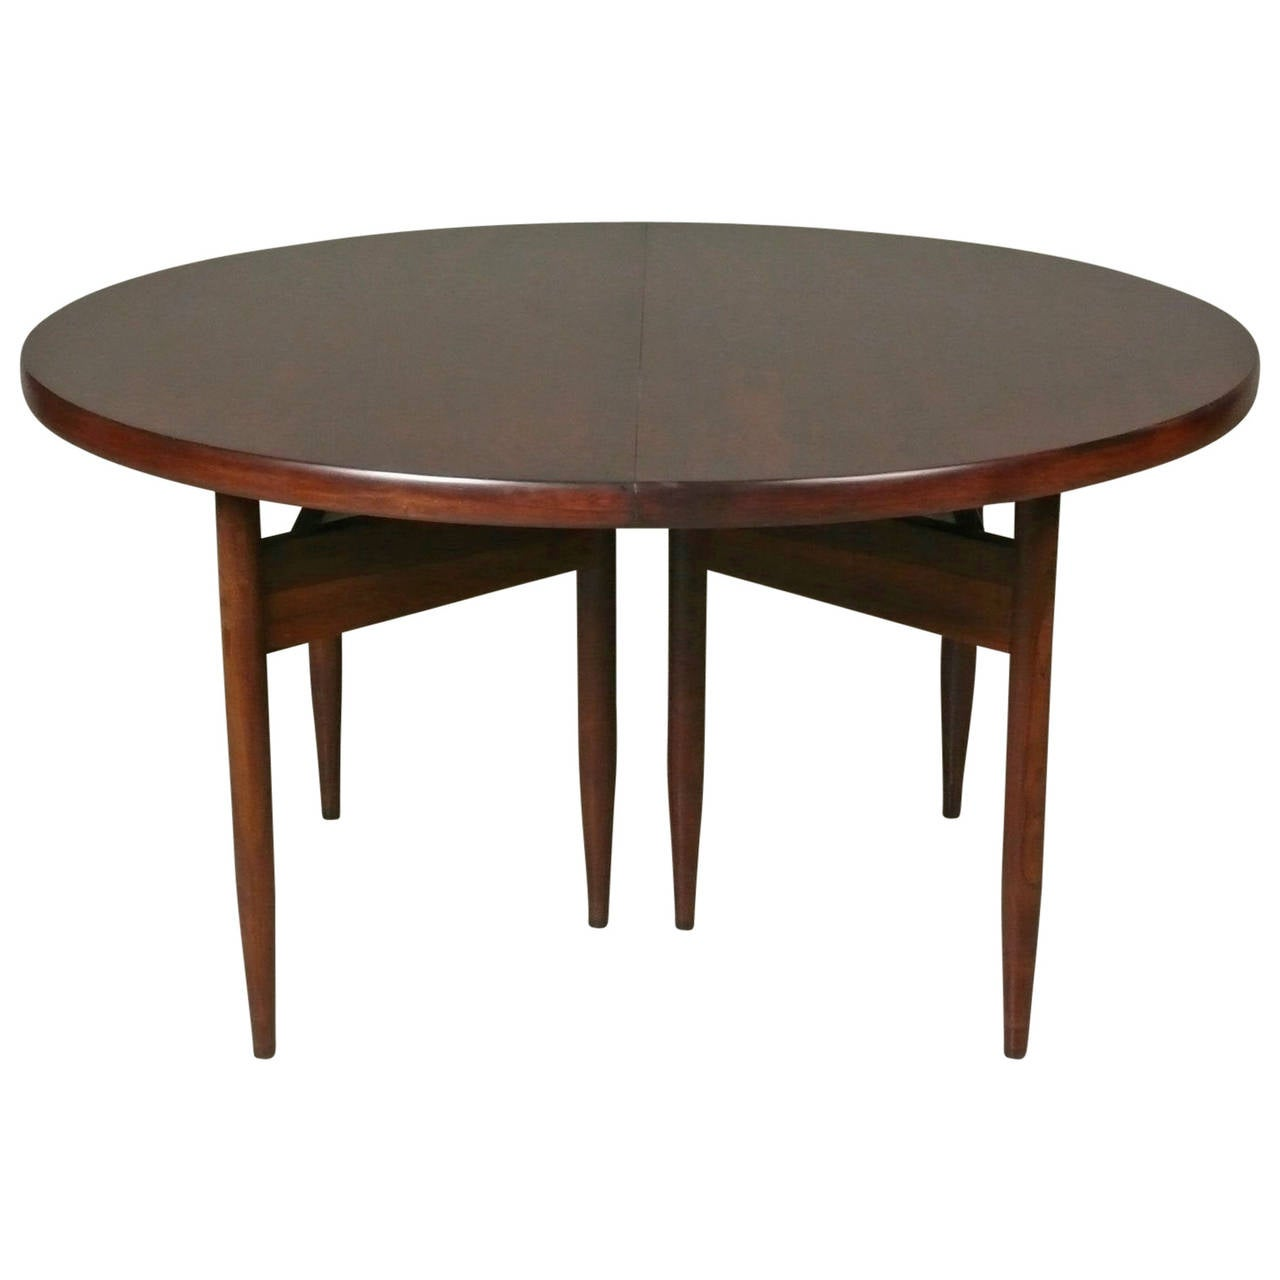 Danish Rosewood Dining Table With Two Leaves At 1stdibs